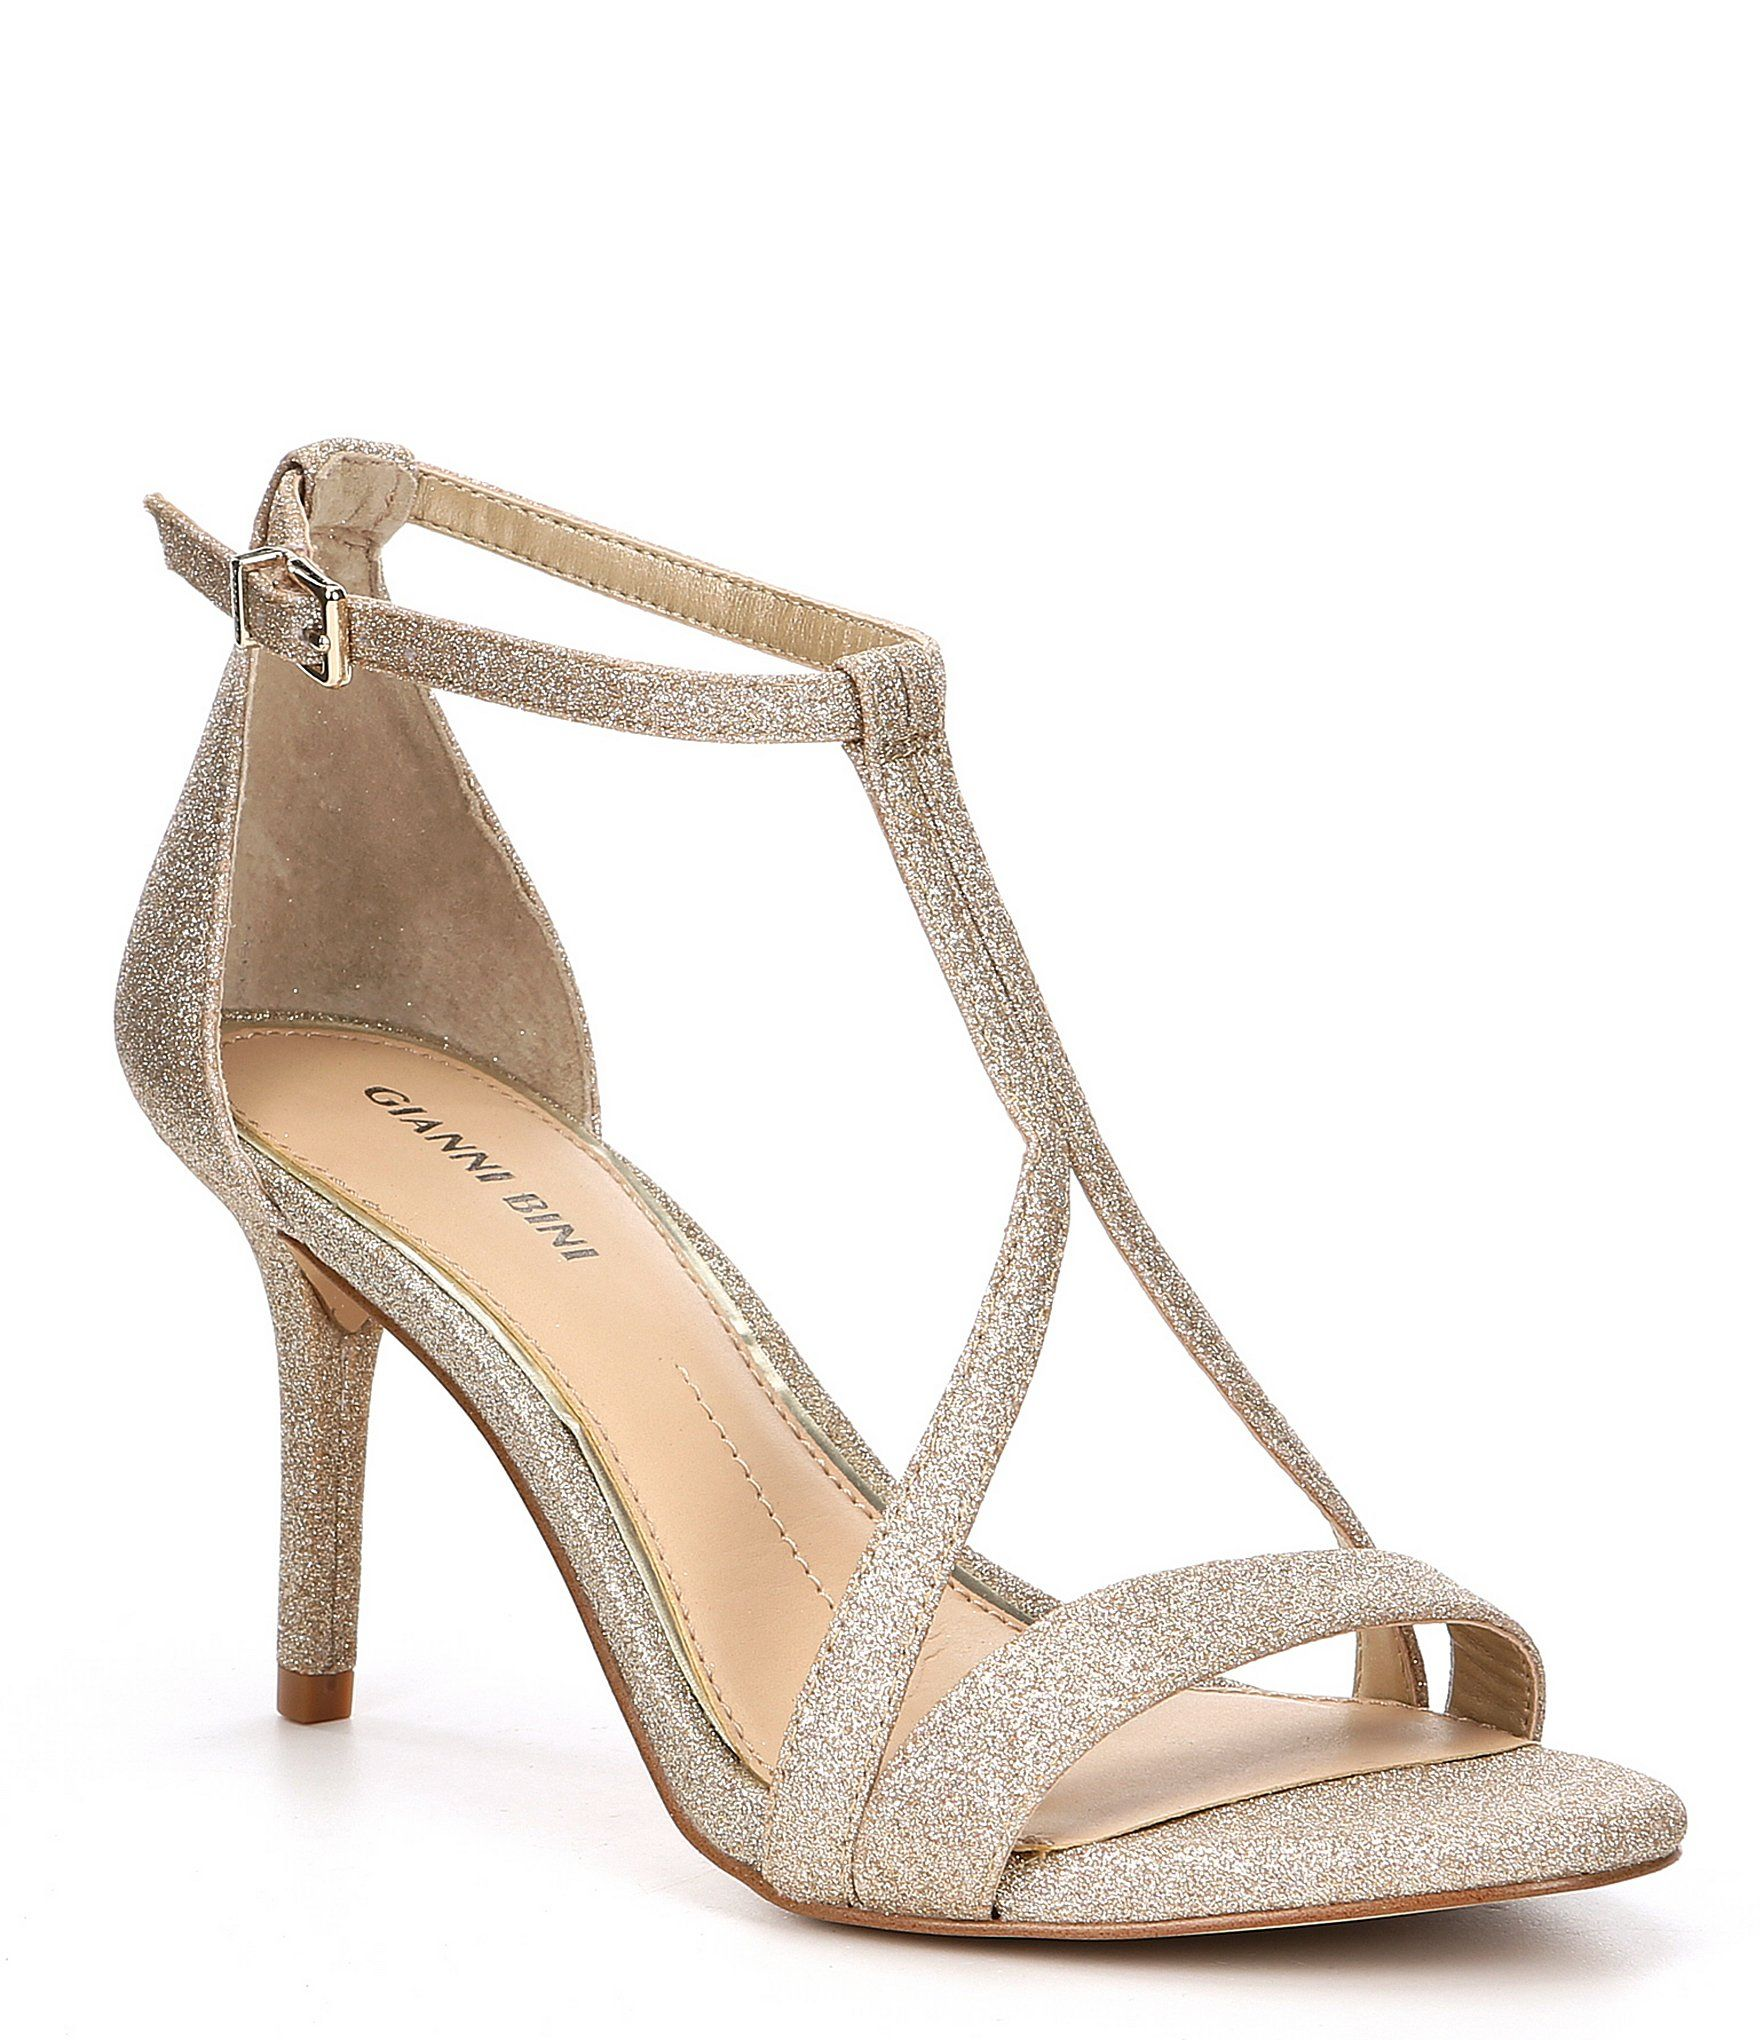 Pin By Susana Font On بلارينا In 2021 T Strap Sandals Gold Dress Sandals Gold Bridal Shoes